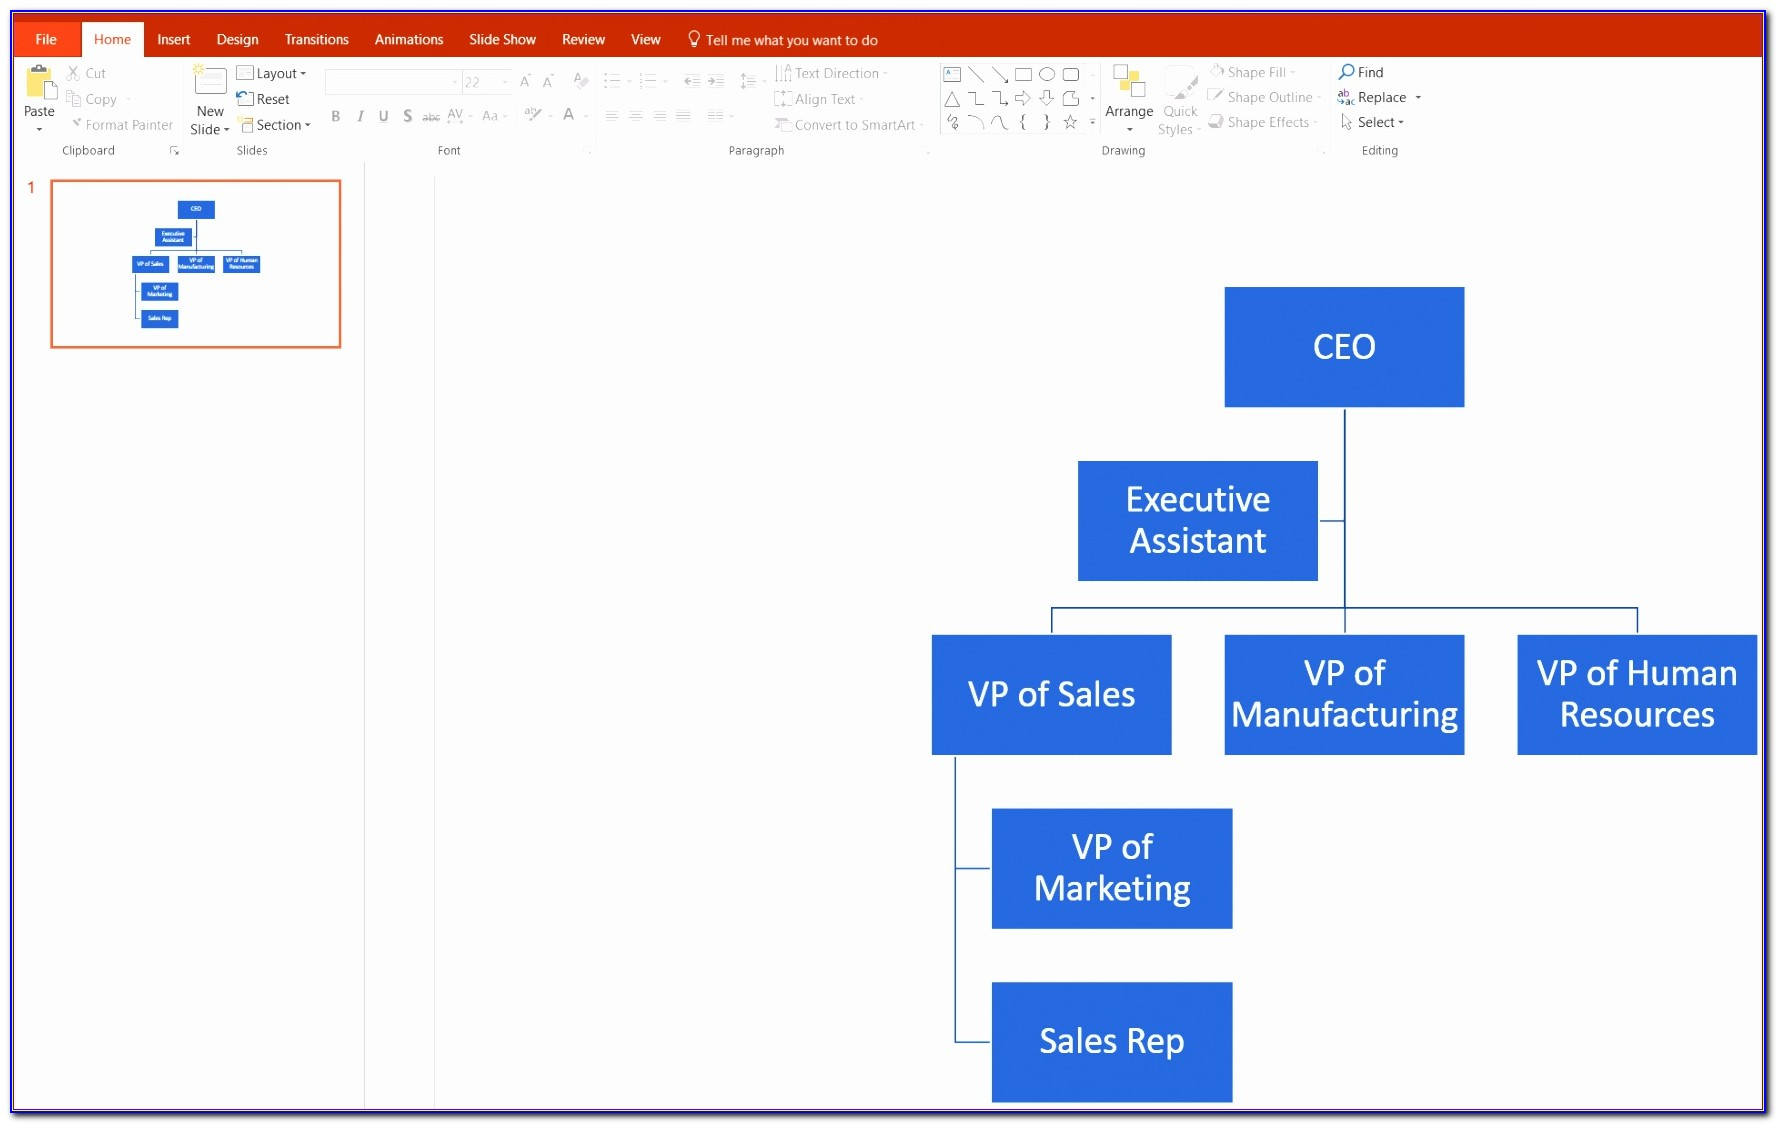 Org Chart Template Excel 2010 Gbksb Fresh How To Make An Org Chart In Powerpoint